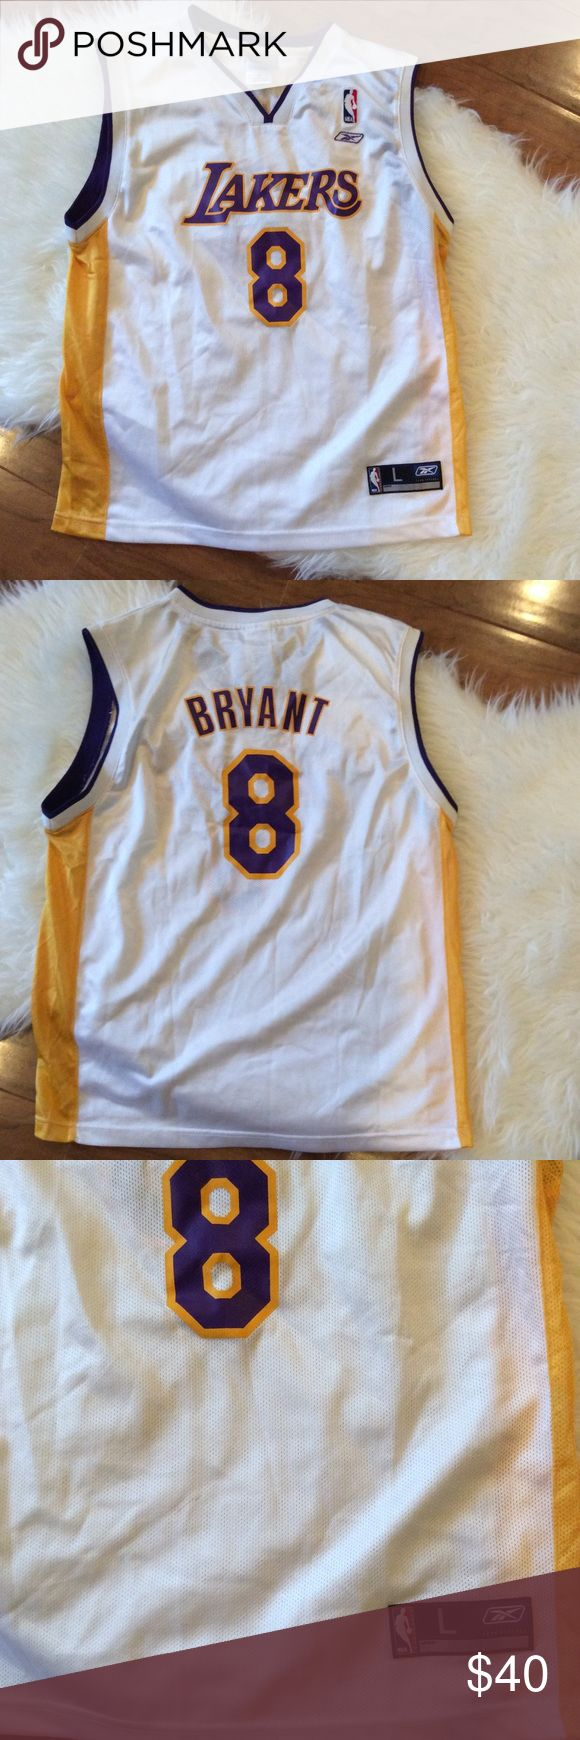 """Reebok Kobe Bryant Jersey Condition: gently worn but in good overall condition. There is a small stain on the bottom front of the jersey. Can be seen in the third picture. Approx measurements: Labeled as Large (14-16) pit-to-pit: 20"""" Length: 25 1/2"""" B:4 NO TRADES OR MODELING Reebok Tops"""